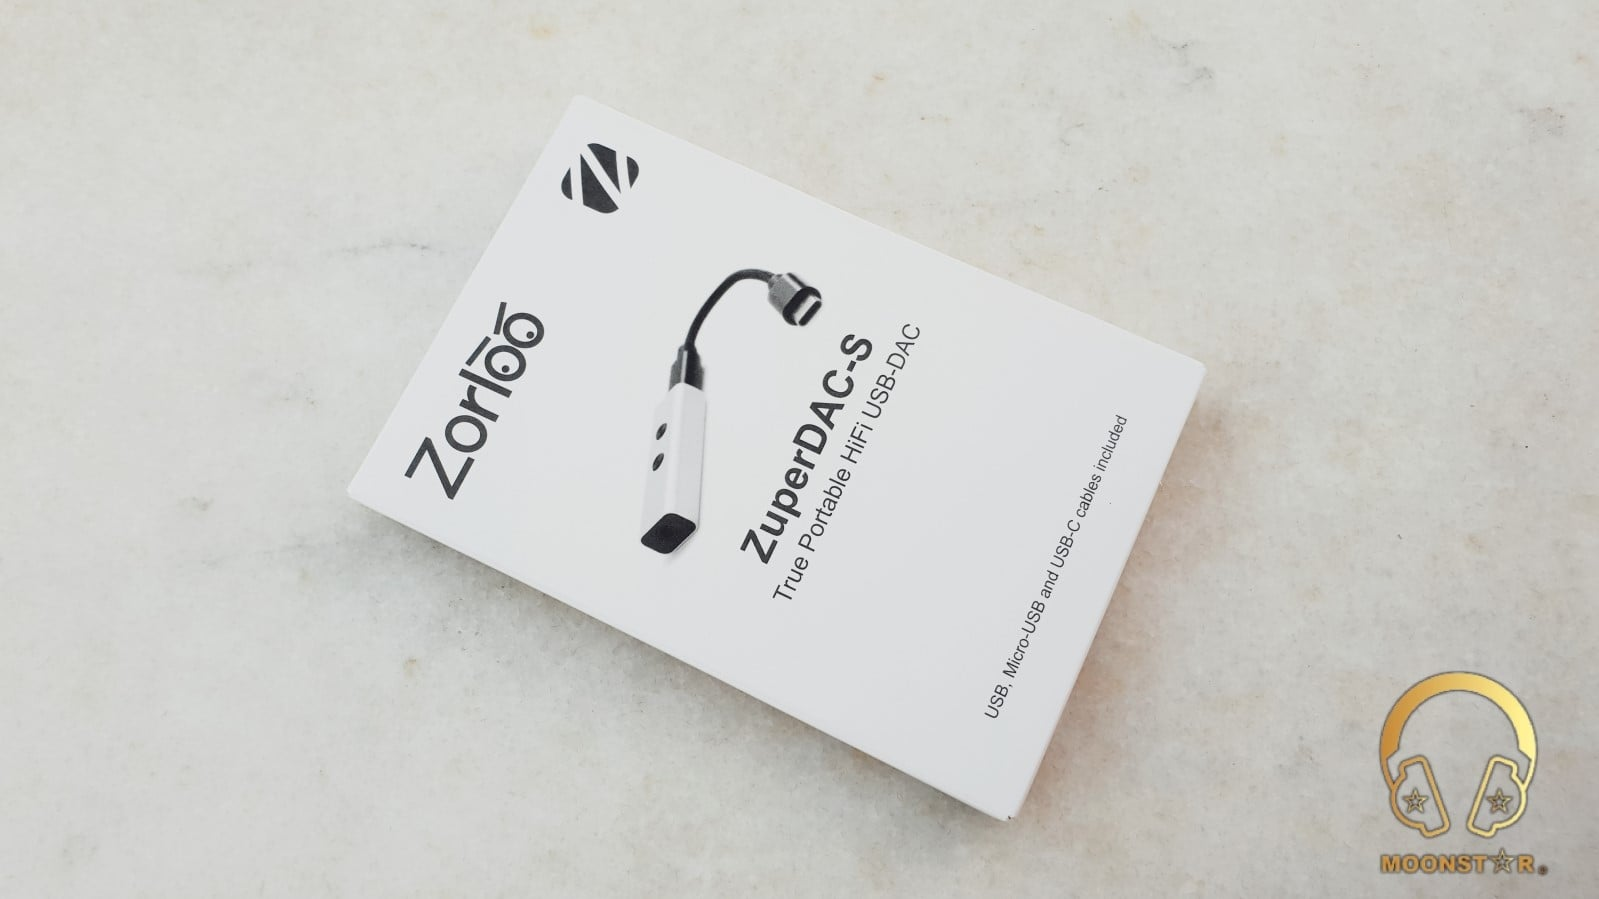 Zorloo ZuperDAC-S  Portable DAC/AMP Review